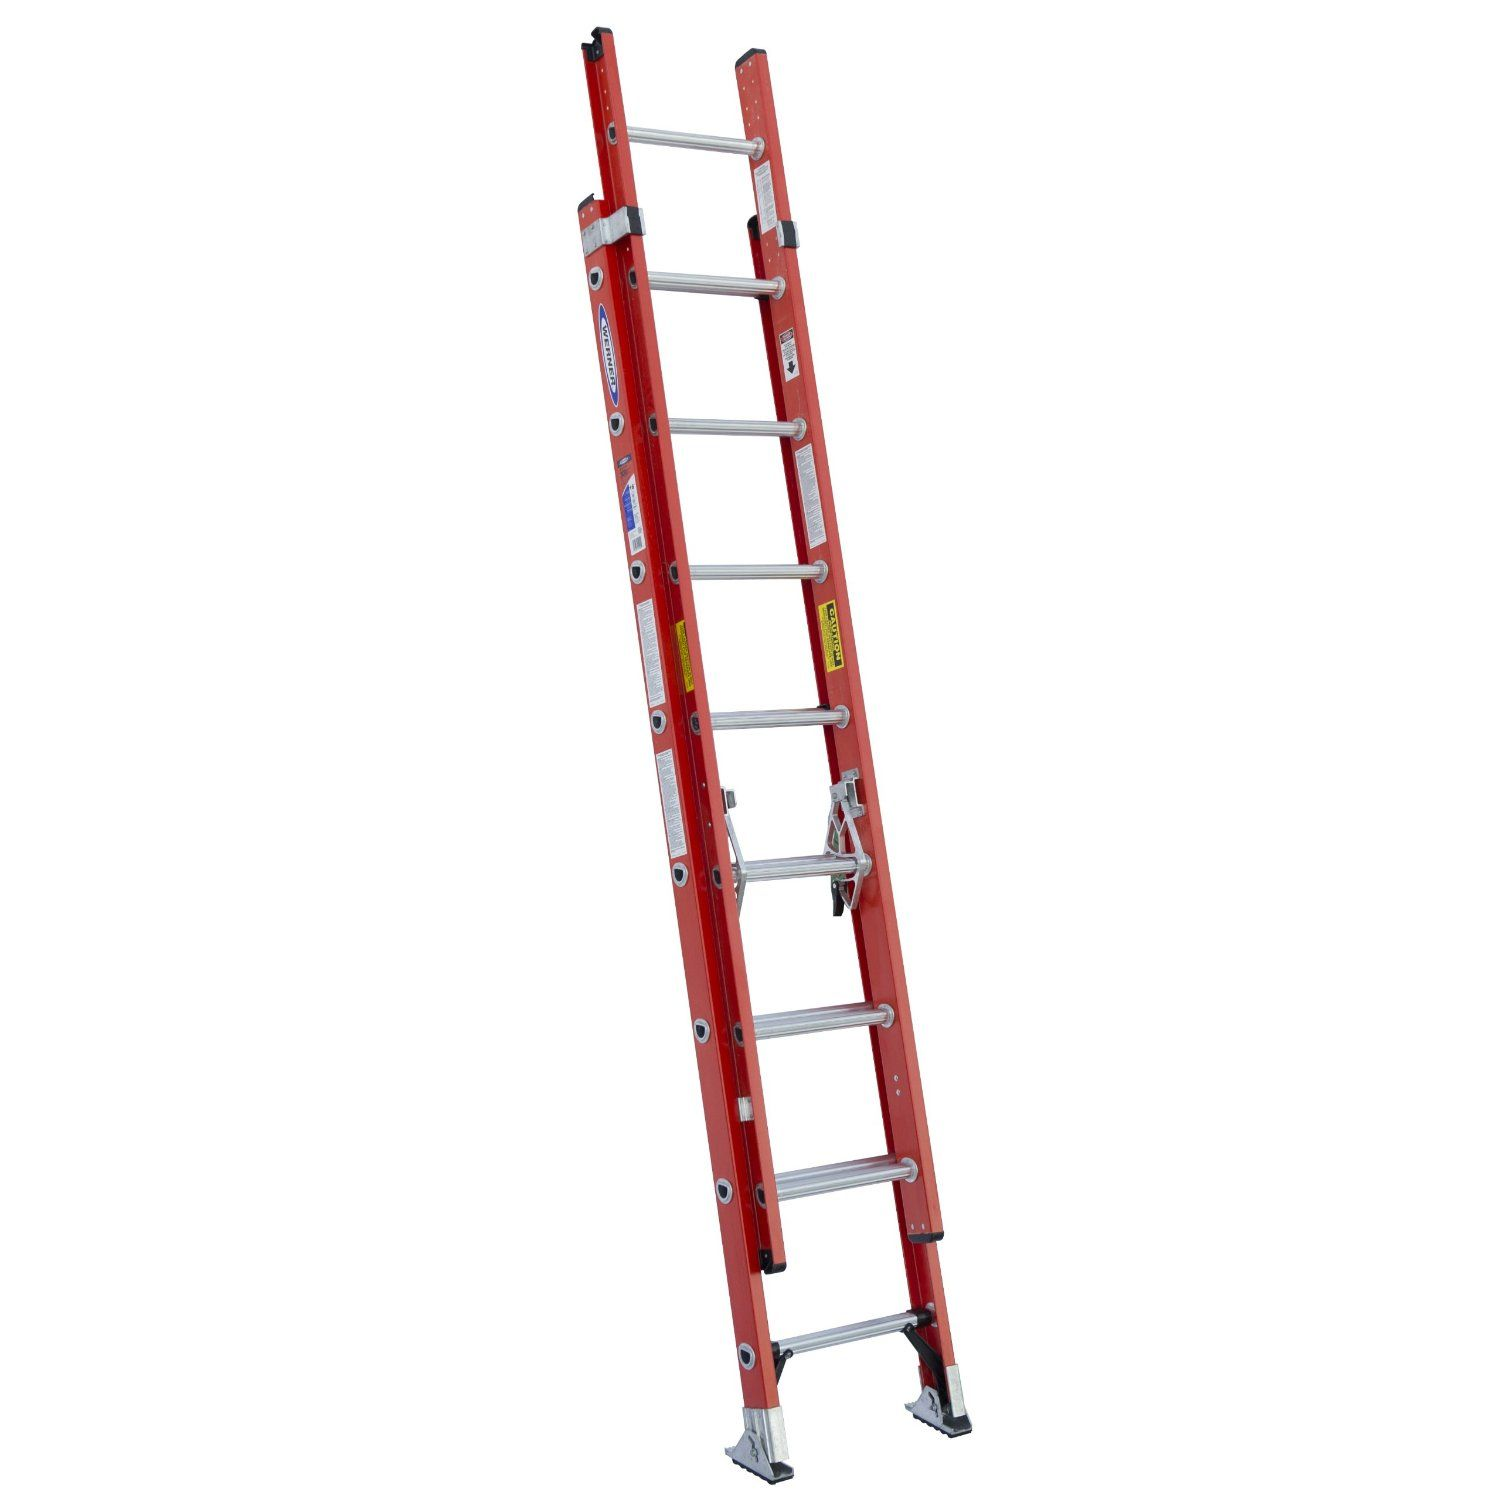 Werner Fiberglass Extension Ladder Well Made And Sturdy Without The Bounce Of Aluminum Ladders Rated For Up To 300lbs Ladder Fiberglass Aluminium Ladder